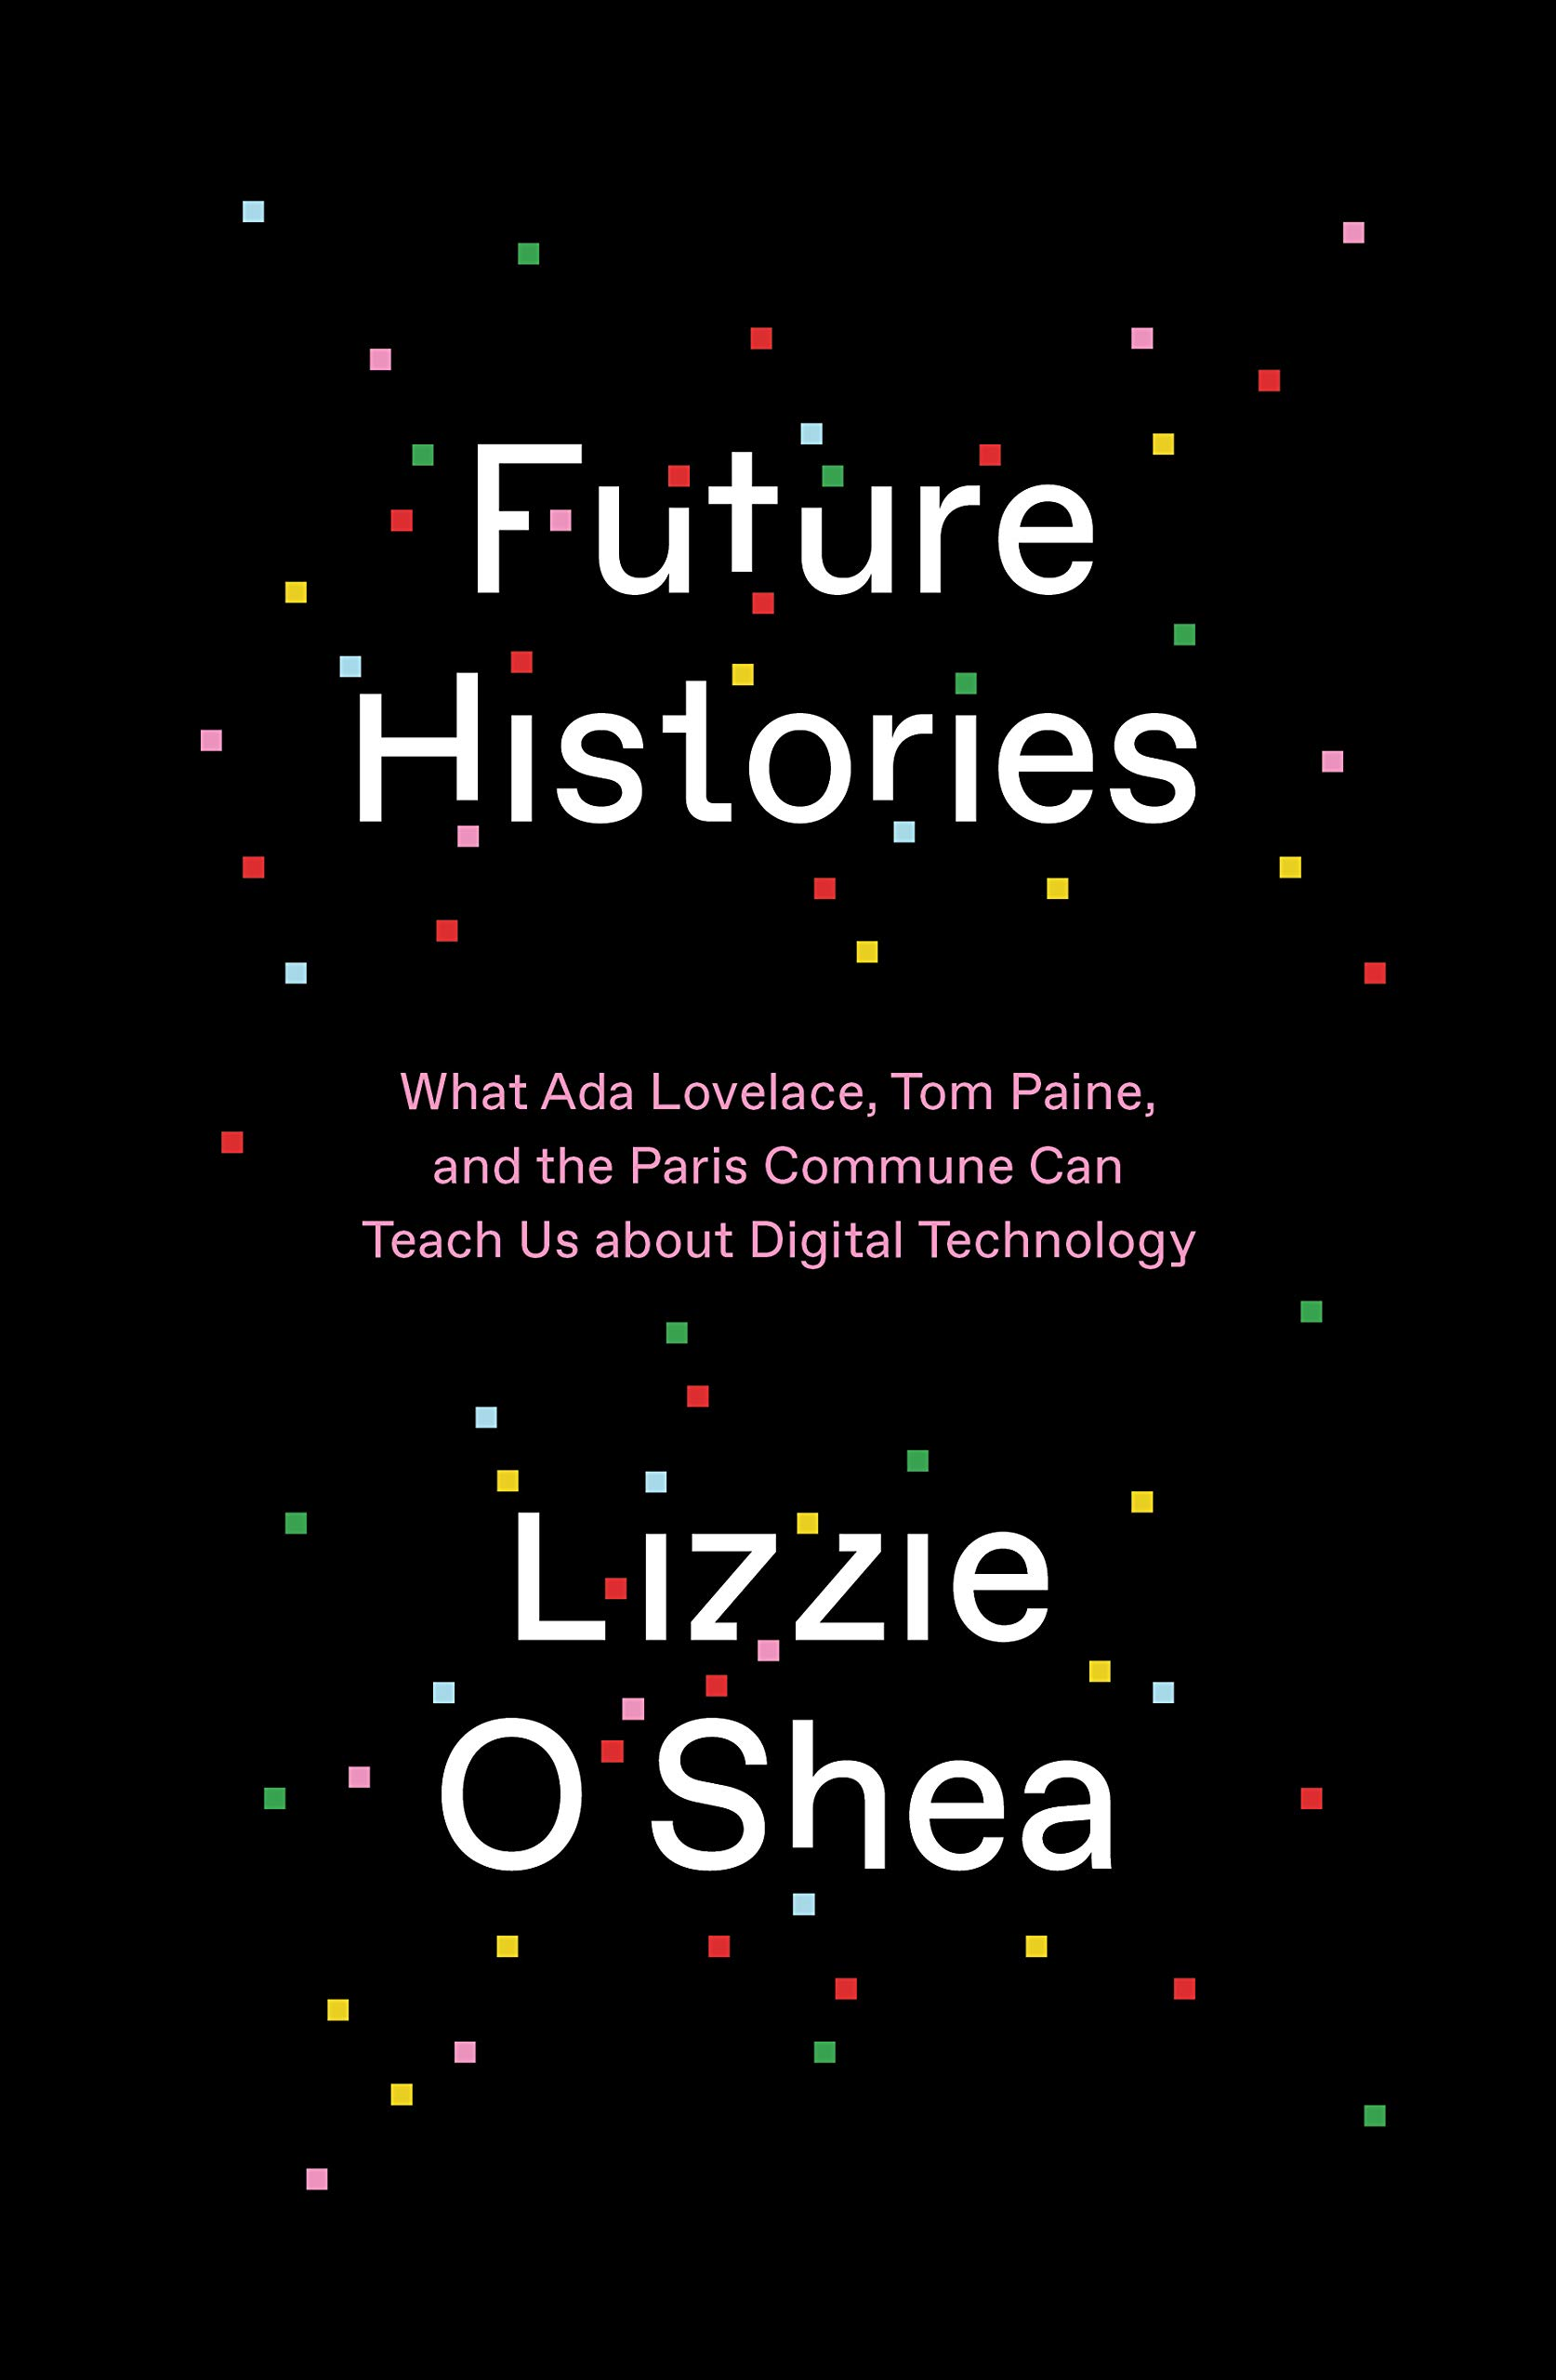 Future Histories: What Ada Lovelace, Tom Paine, and the